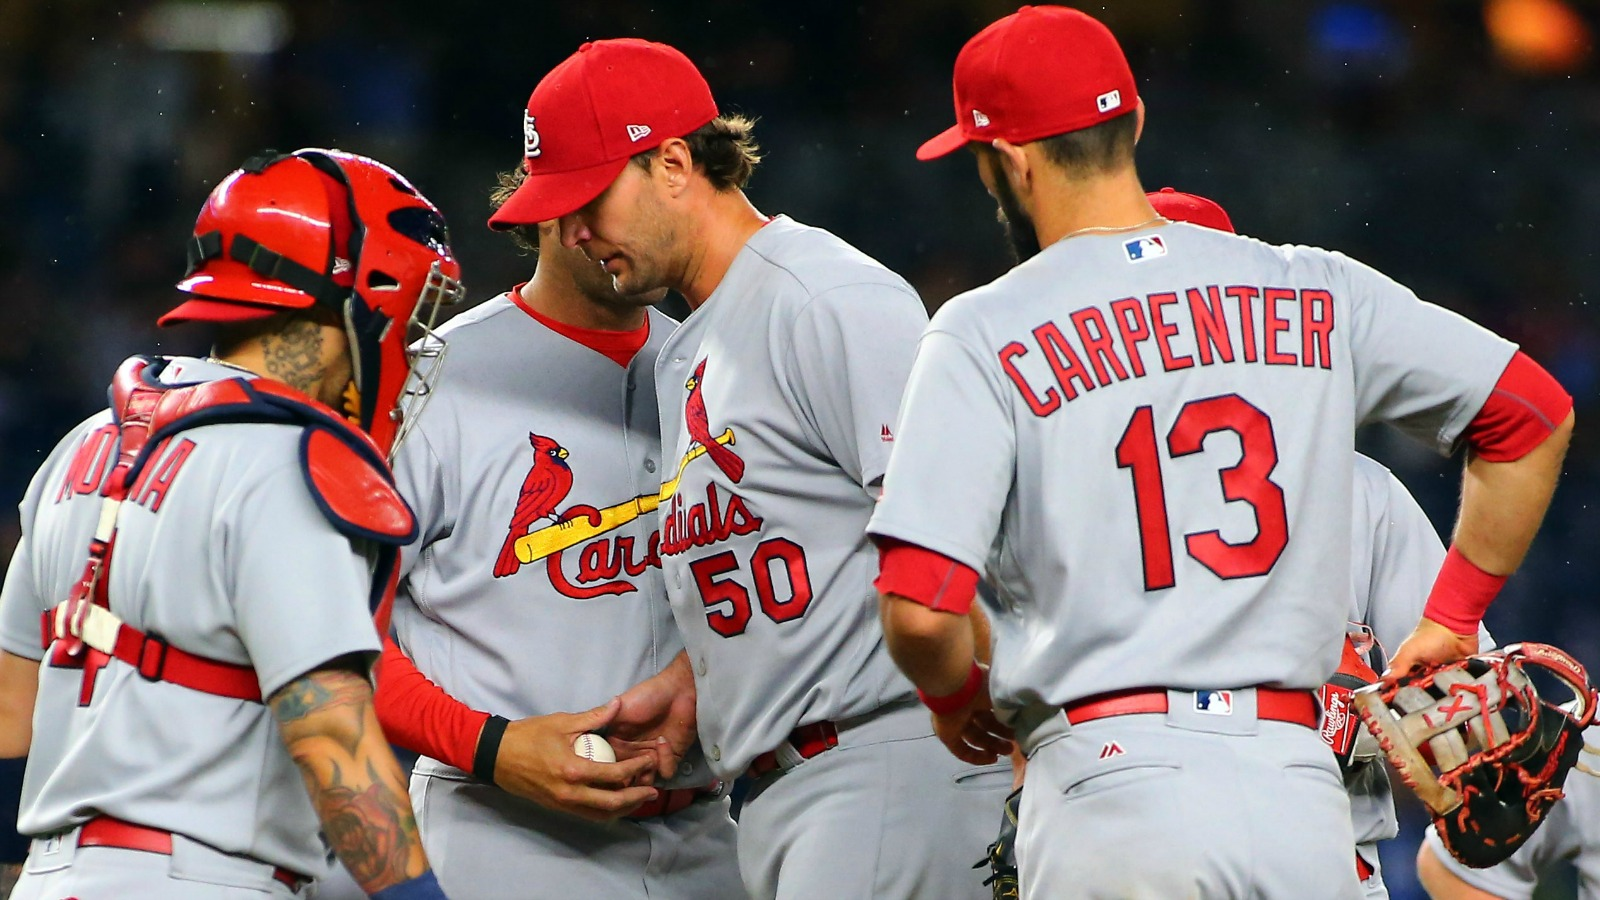 041917-MLB-Cardinals-PI